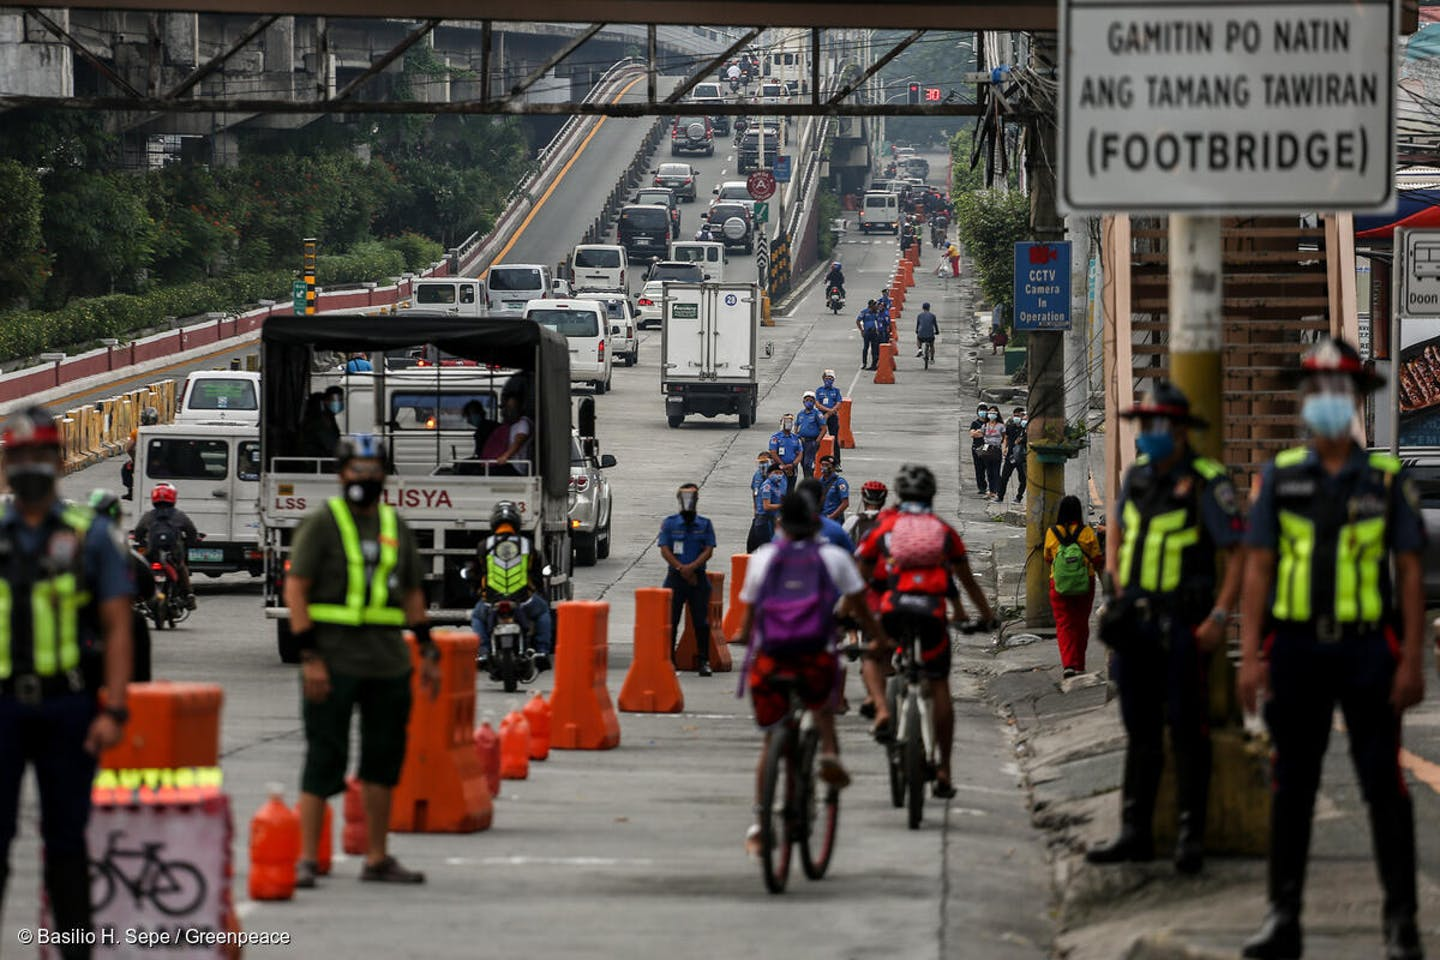 A trial of bicycle lanes on EDSA